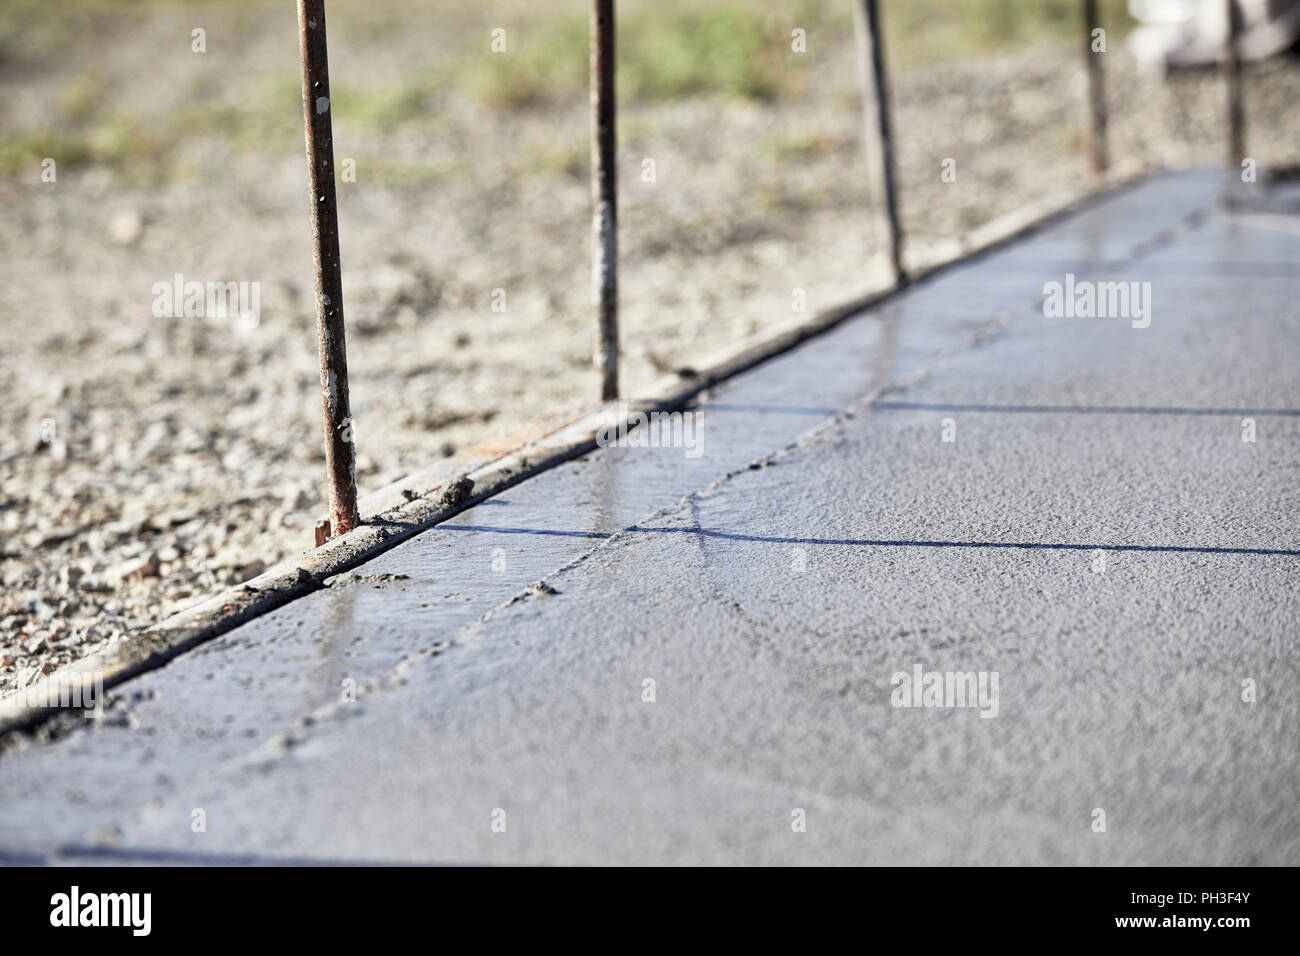 A wet concrete slab with a newly edged side and shallow depth of field Stock Photo